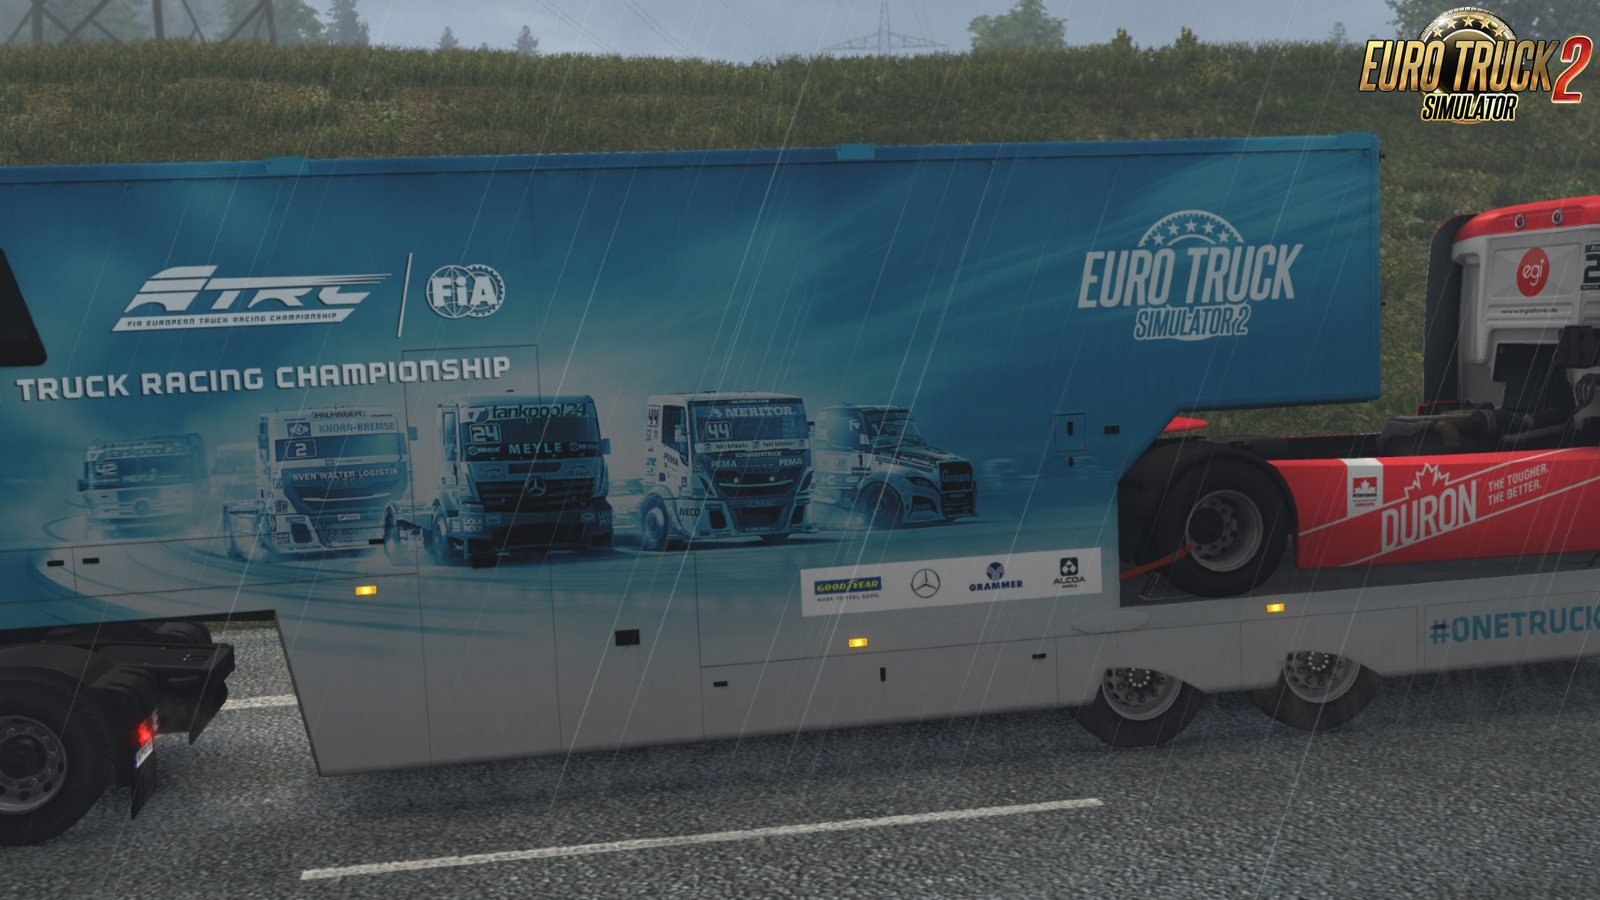 SCS ETRC truck racing trailers in AI traffic